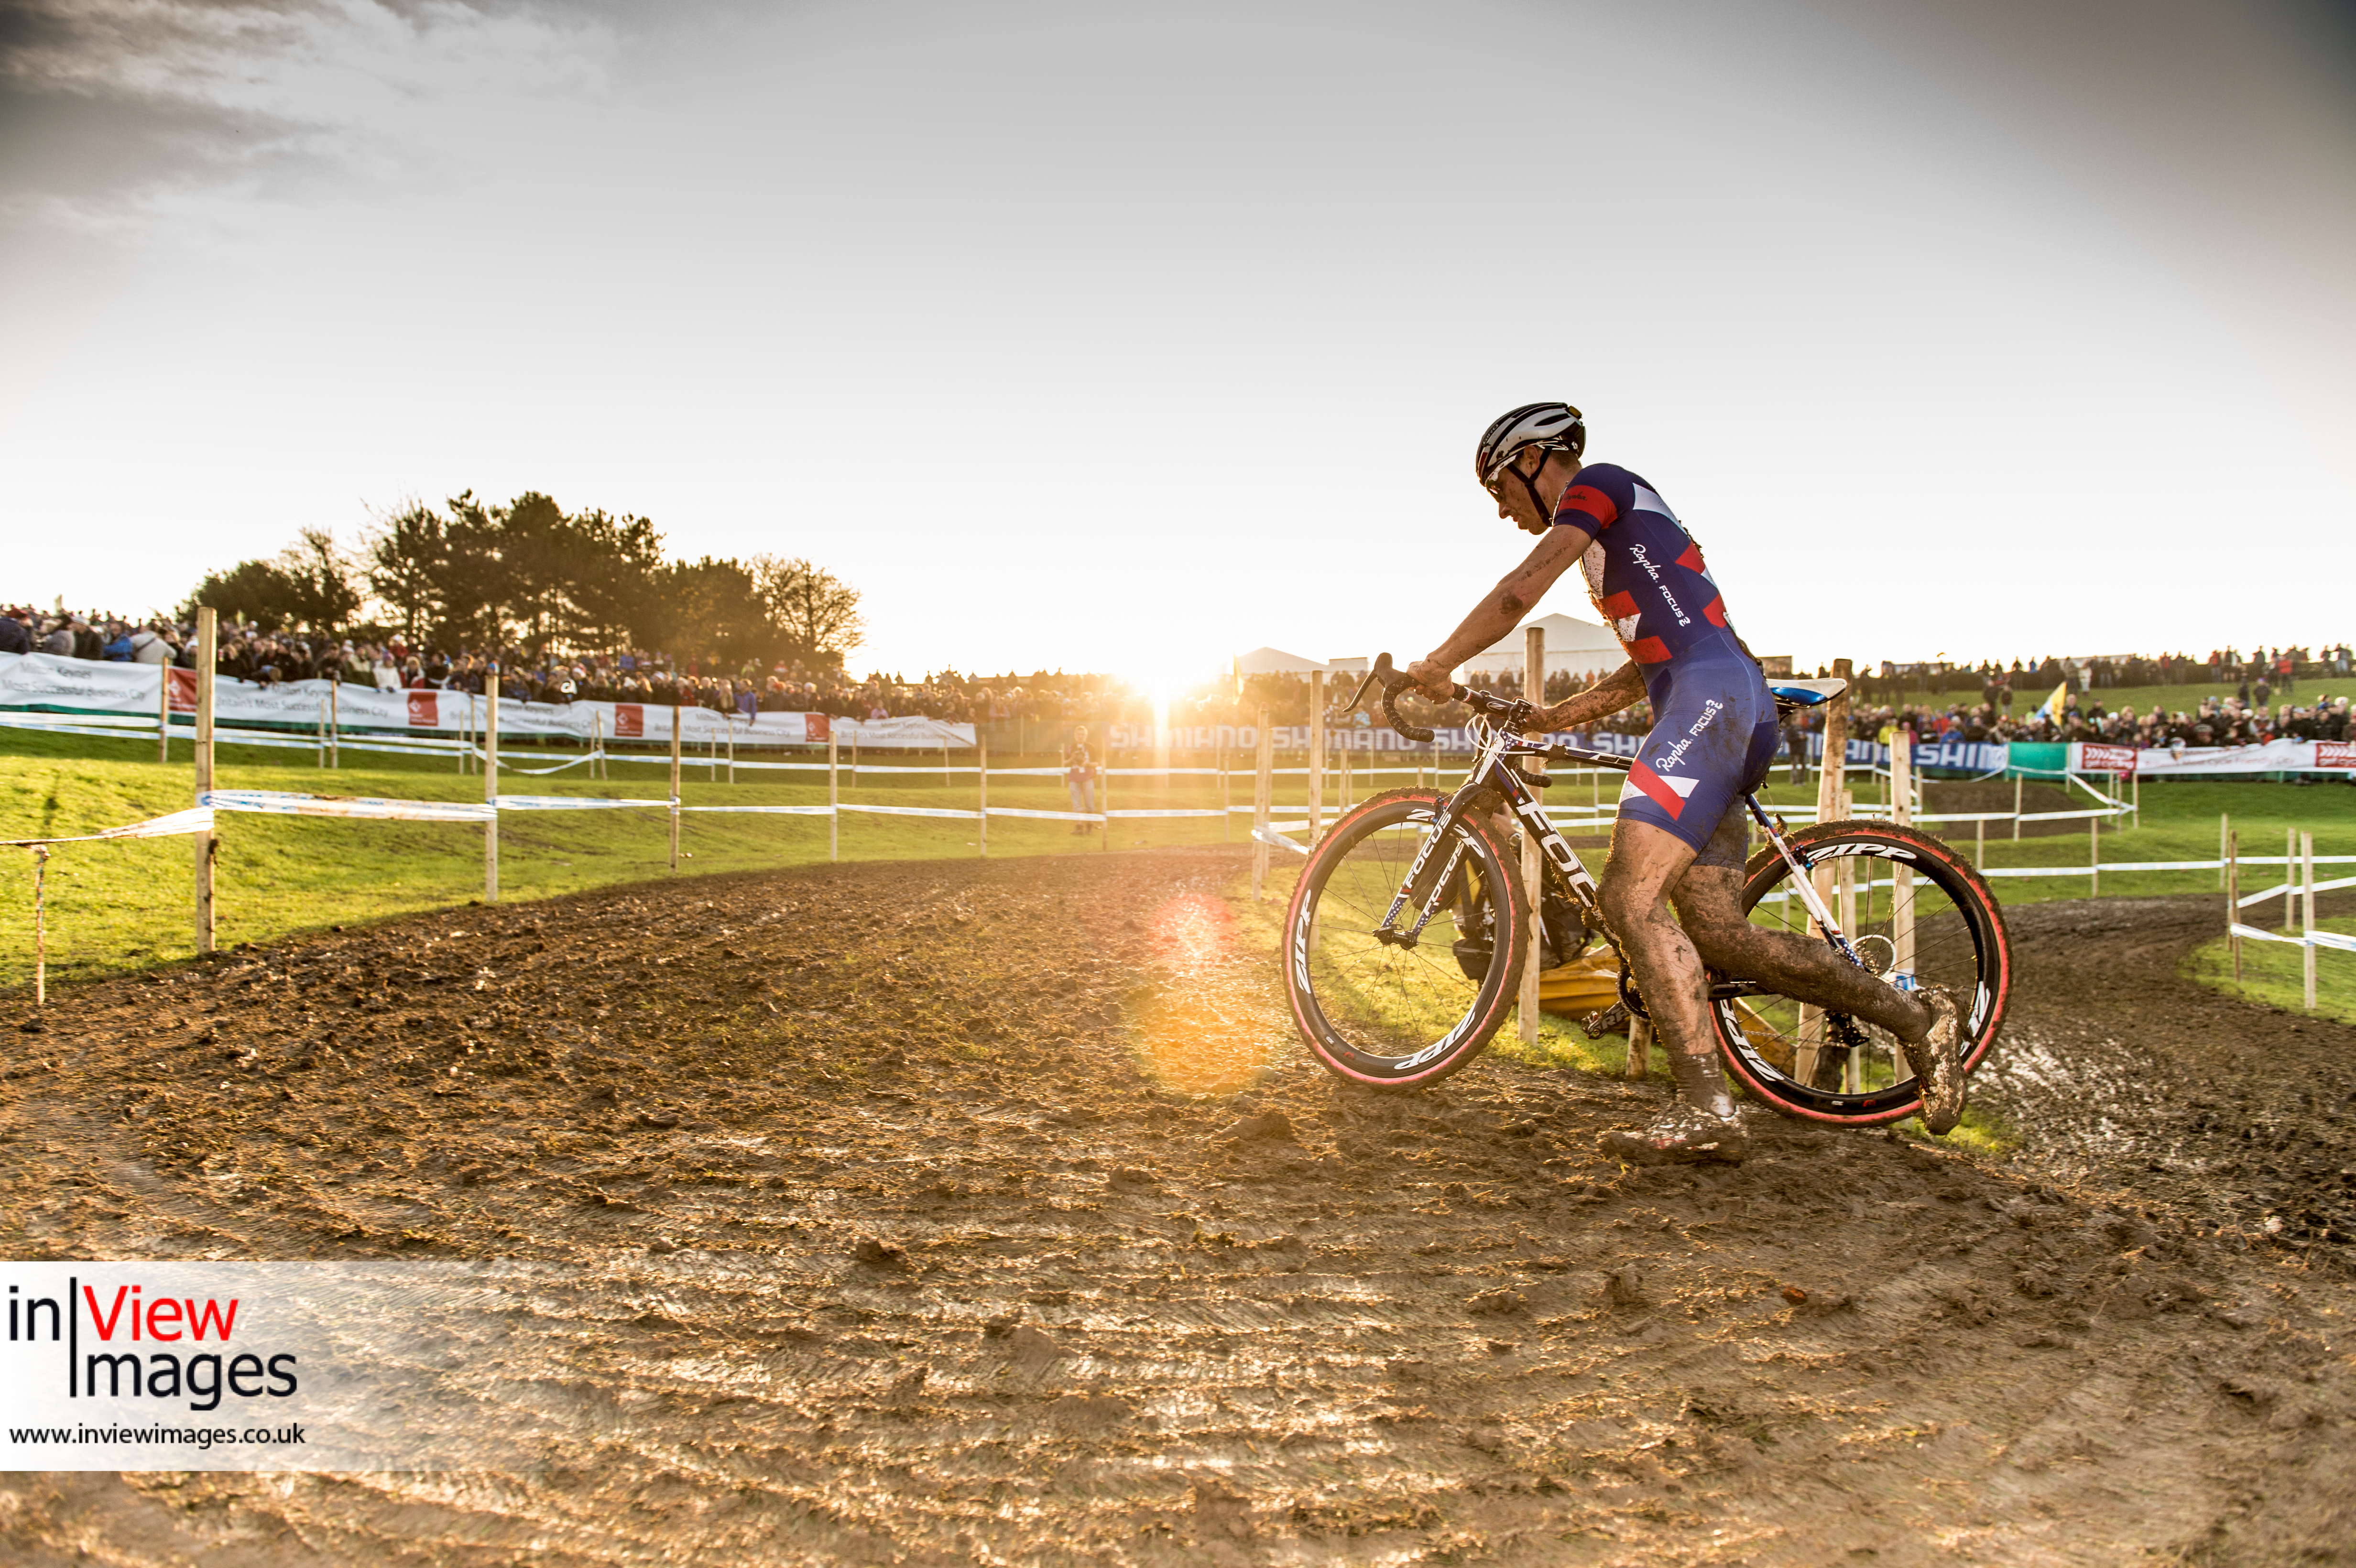 TBT : Milton Keynes UCI World cup 2014 | inView Images